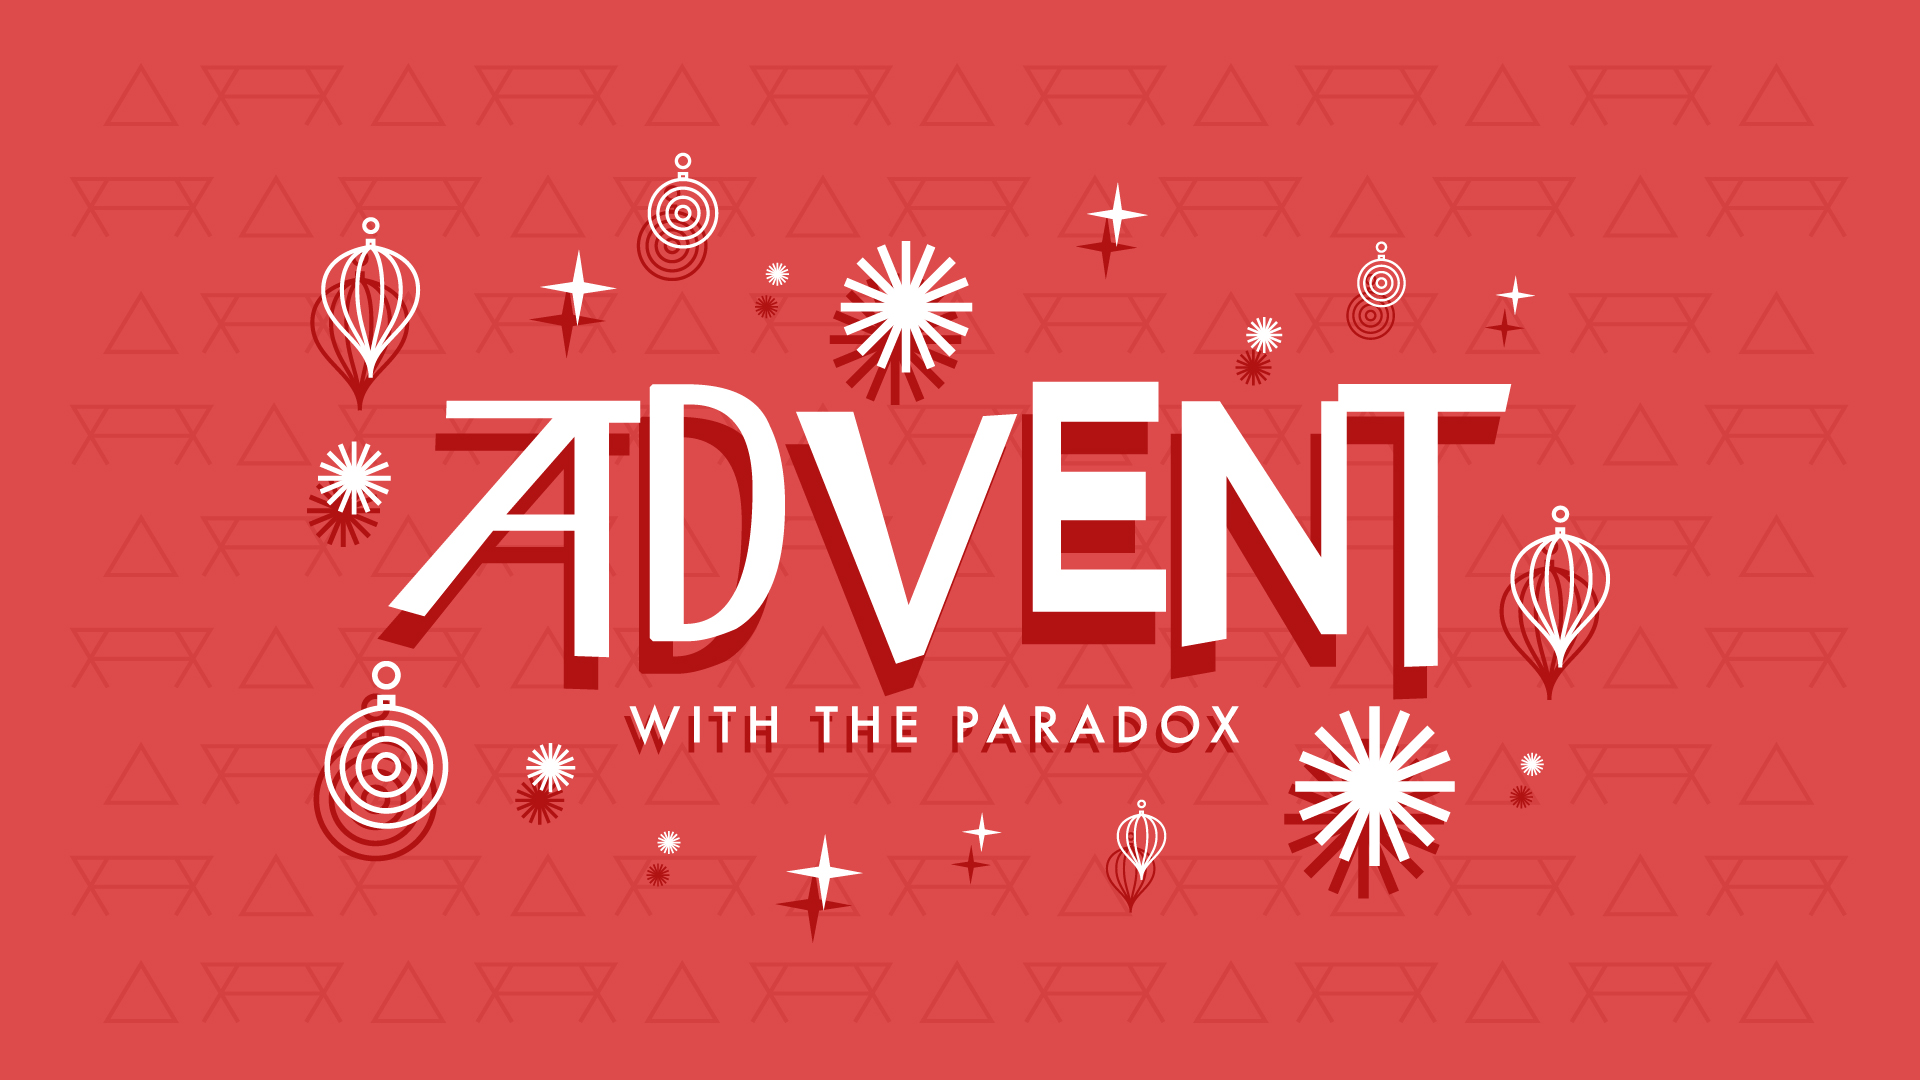 Advent with The Paradox - • Four Sermons• Three Preachers• Two Chapters in Luke